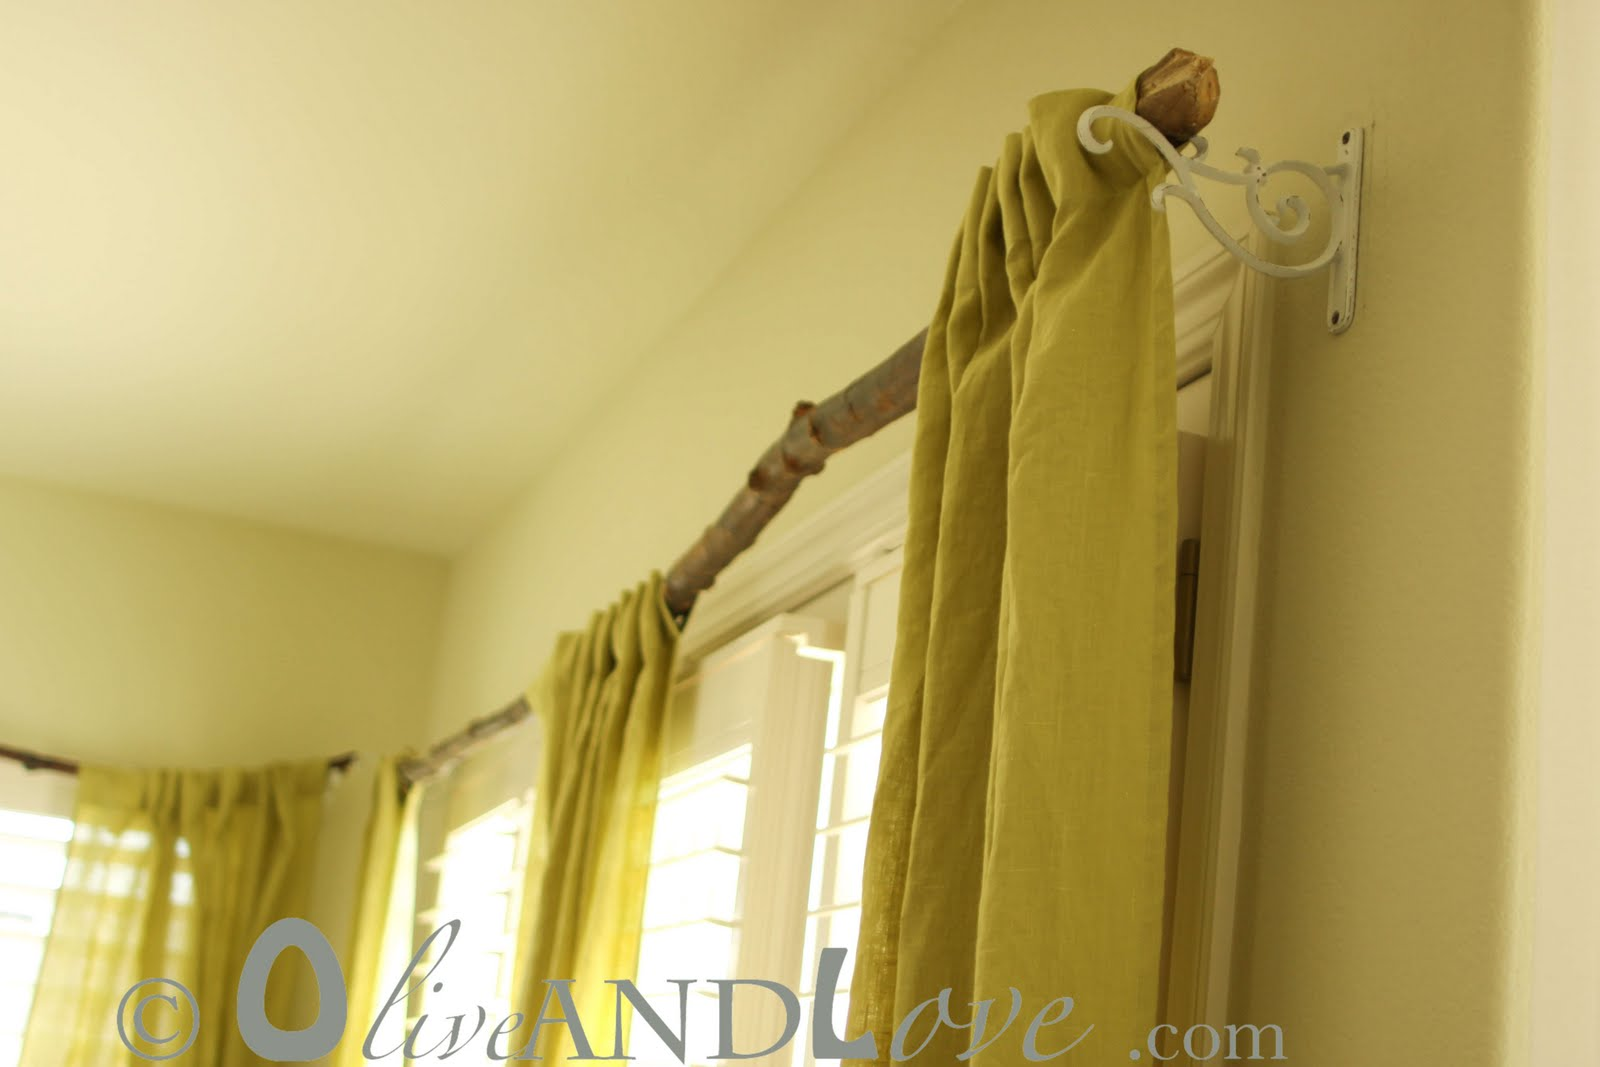 Mini curtain rods - Five Creative Curtain Projects From The Diy Files